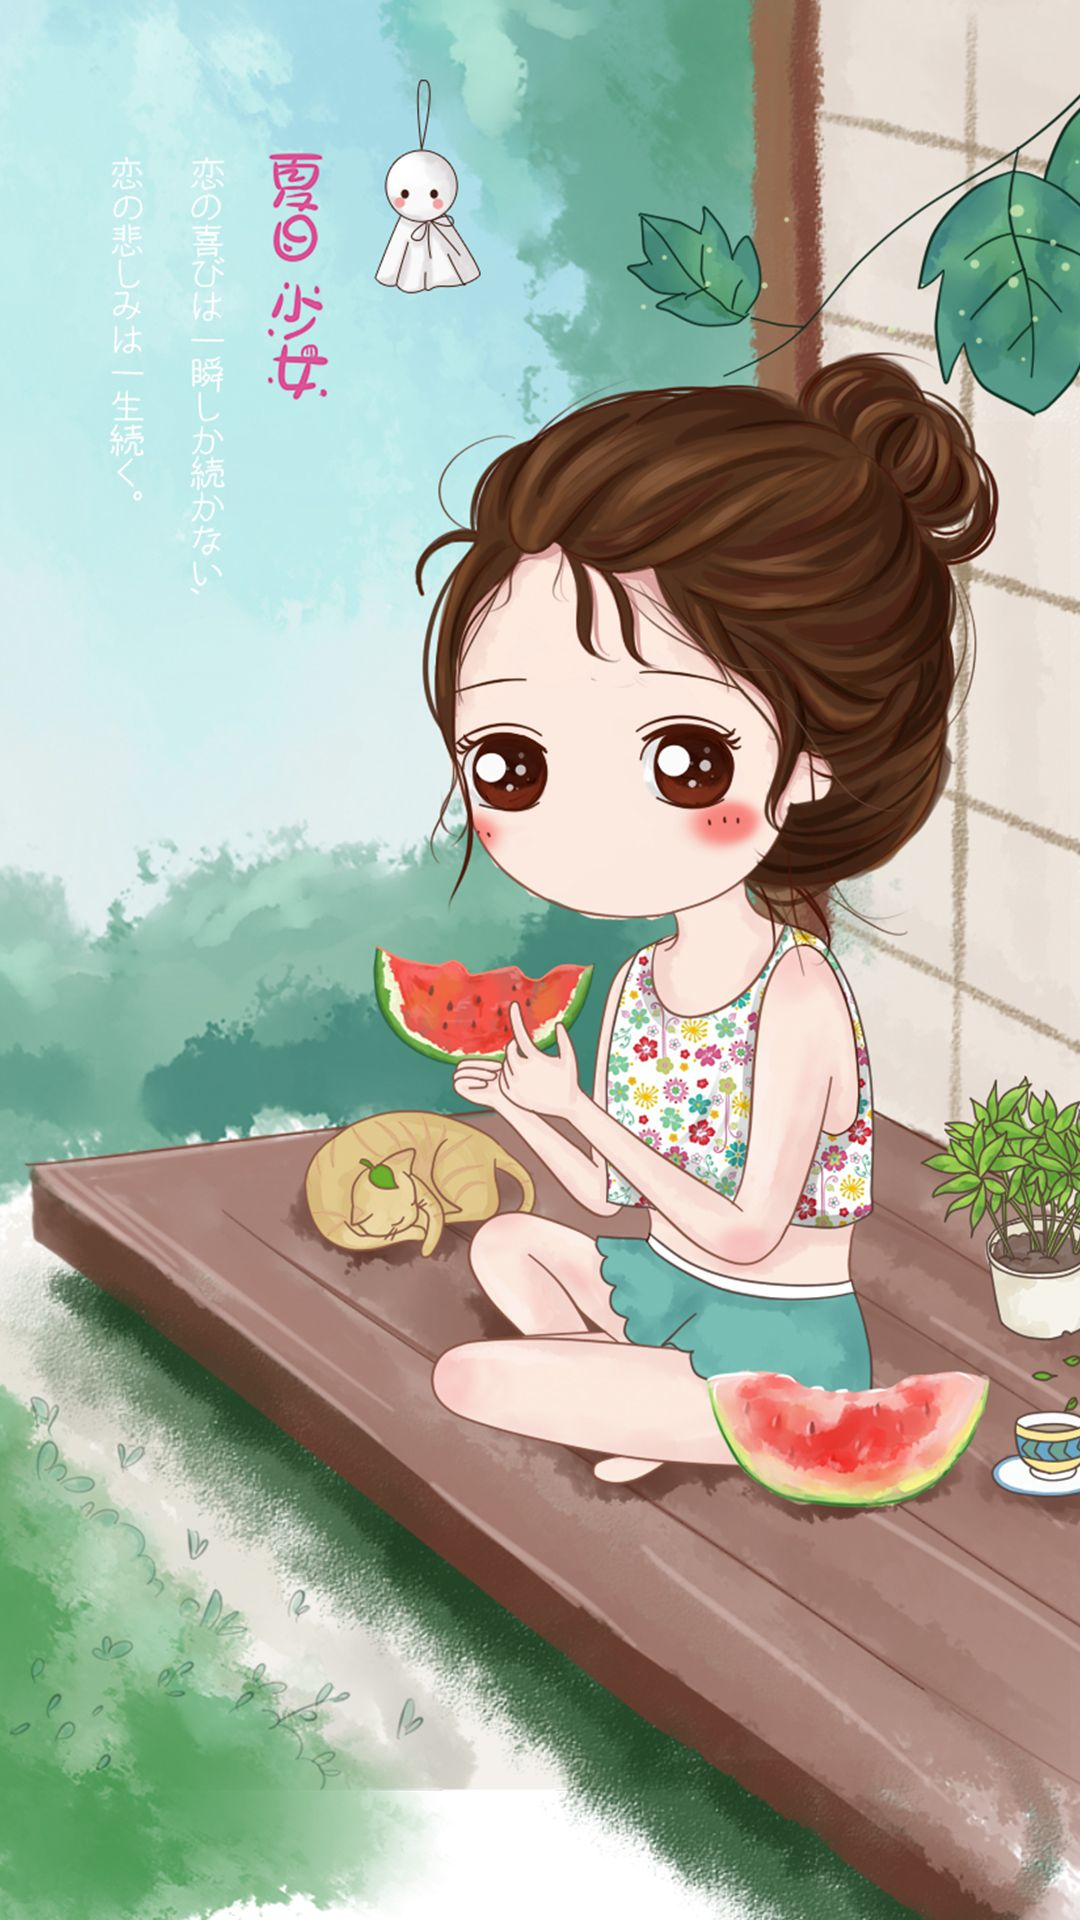 Pin by Natalia Sofia on 小薇的世界光 Cute drawings, Cute